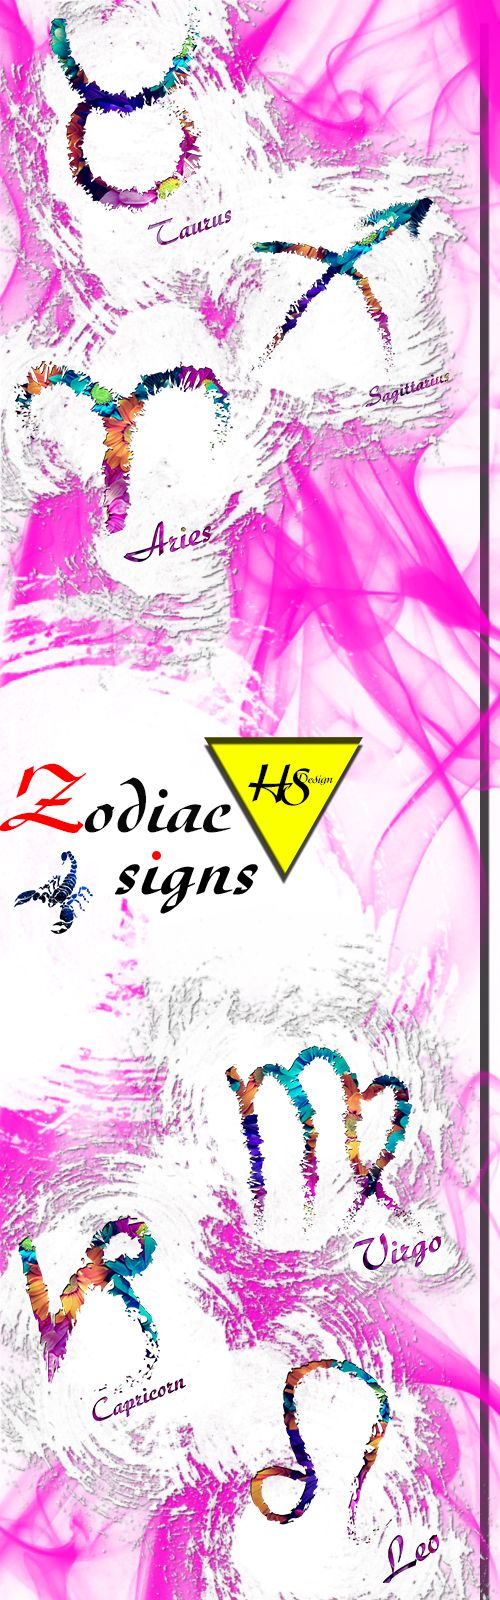 #Exclusive #Tshirts and accessories for the zodiac signs.  A great gift for family and friends.  On the front are signs of the zodiac, and behind them are constellations.  If you wish next to the constellation, you can put the name of the person to whom the gift is intended.#Zodiac signs, #Scorpio, #Virgo, #Aries, #Cancer, #Aquarius, #Pisces, #Taurus, #Capricorn, #Leo, #Sagittarius, #Gemini, #Libra, #Best seller, #Exclusive, #Brand.#design